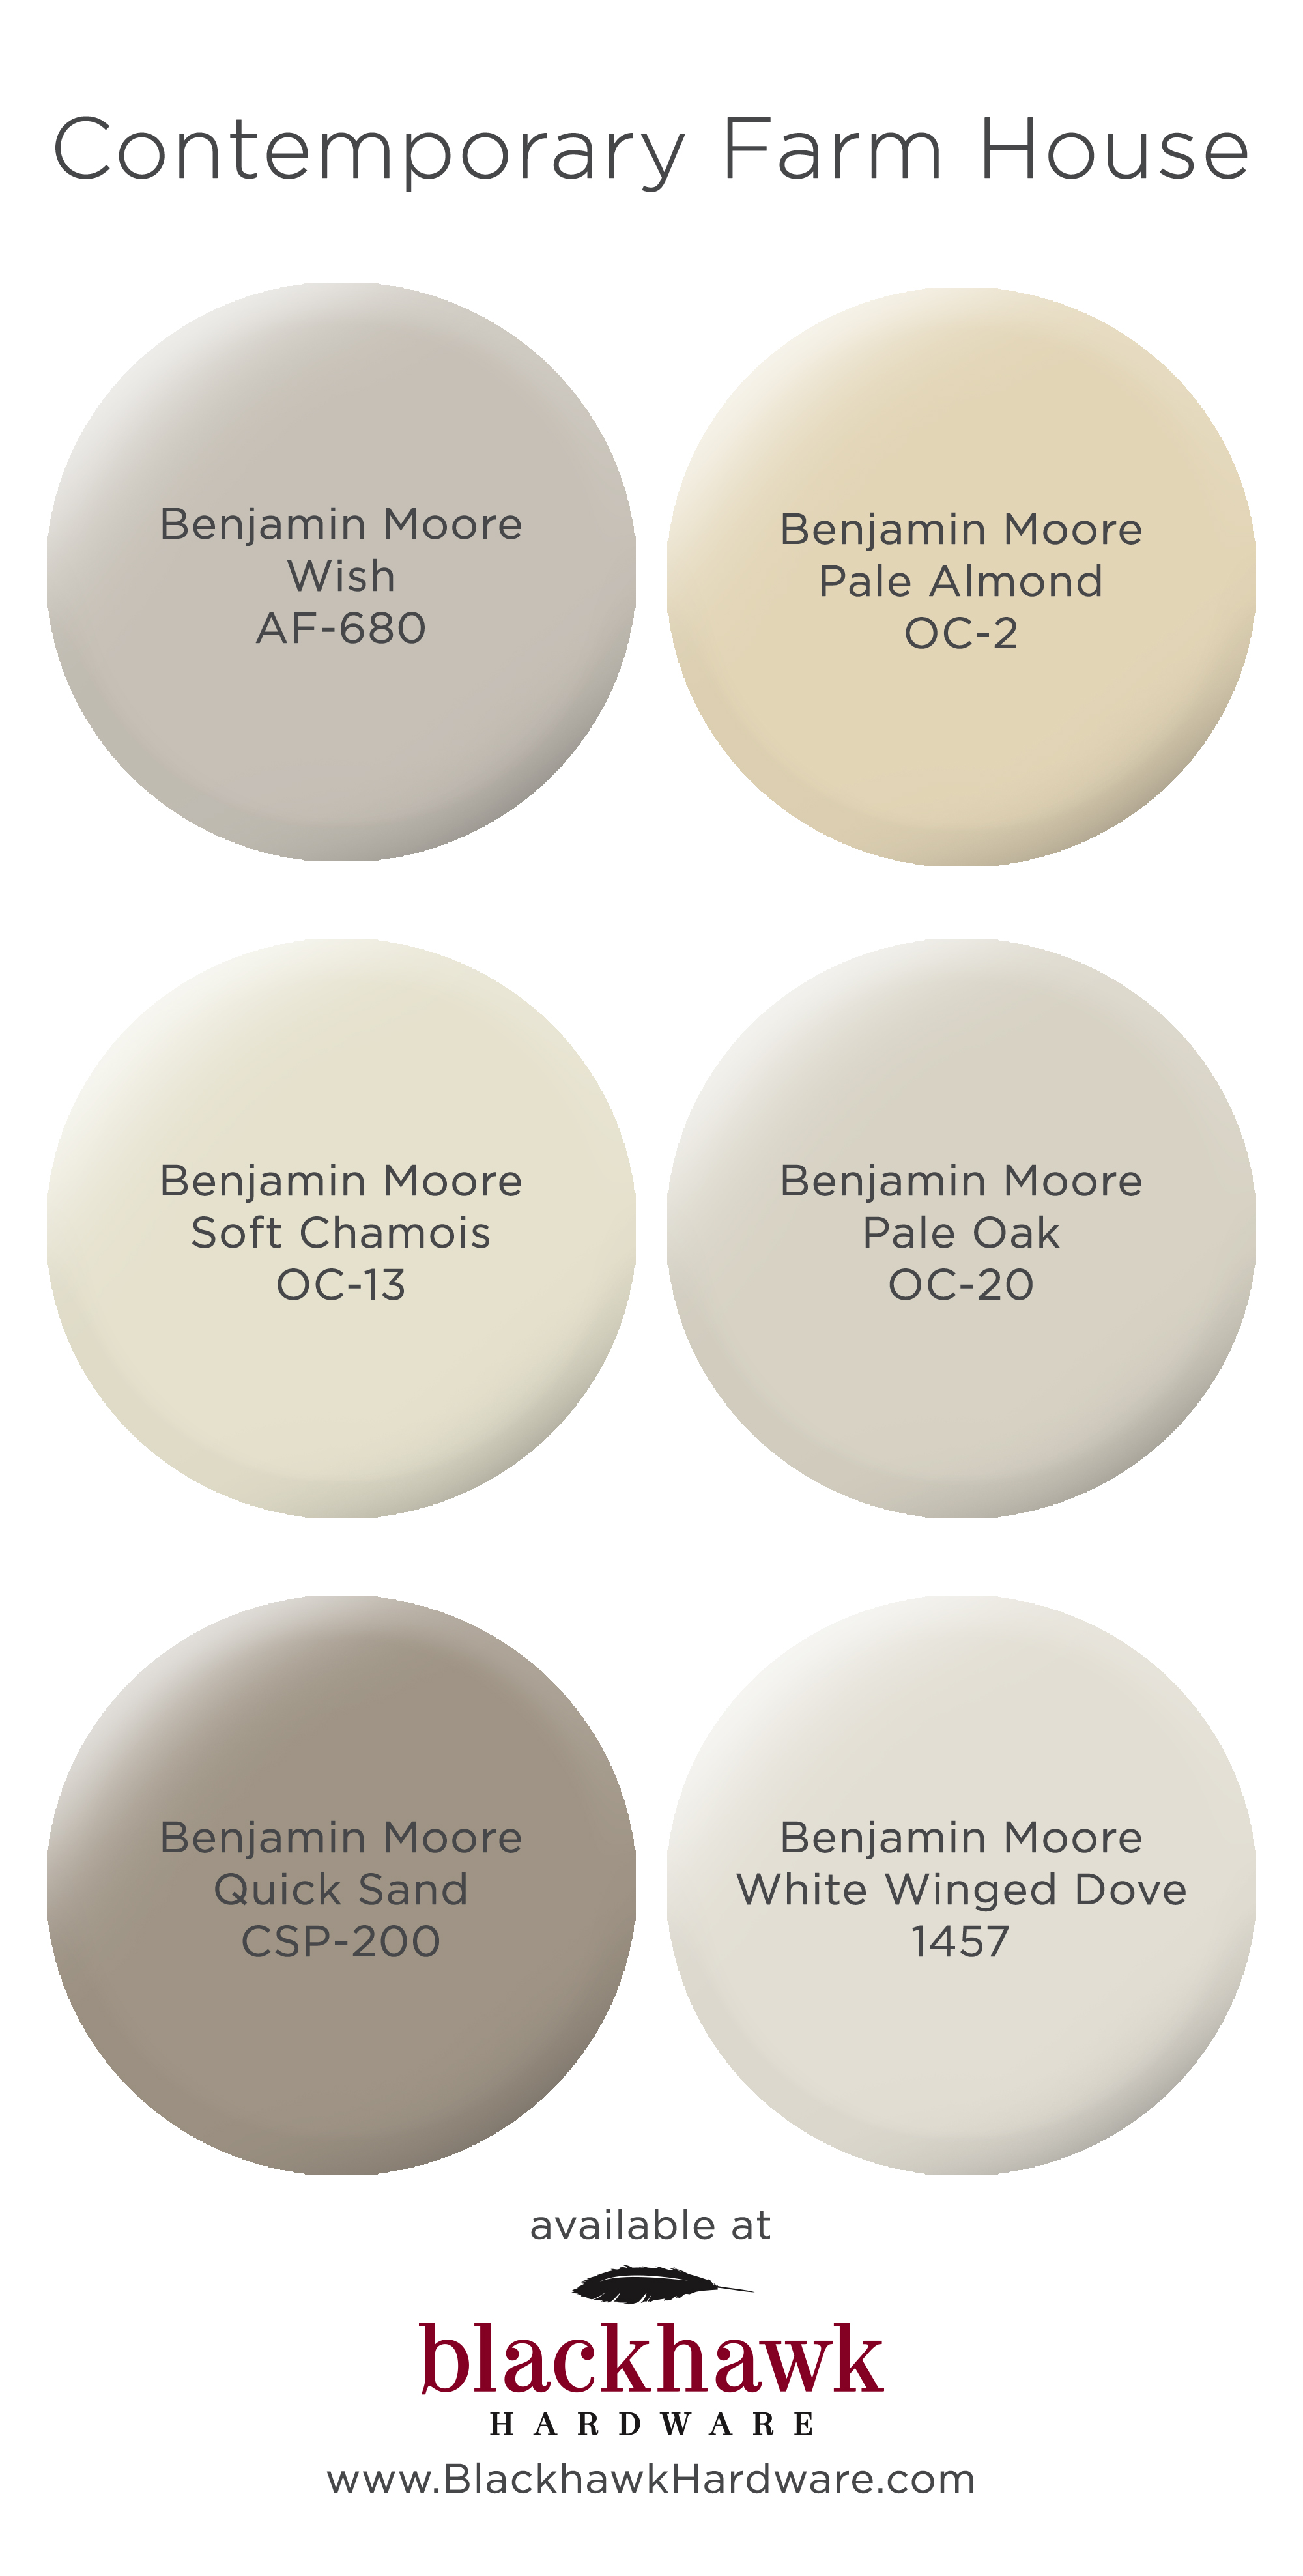 Merveilleux Contemporary Farm House Interior Paint Colors By Benjamin Moore